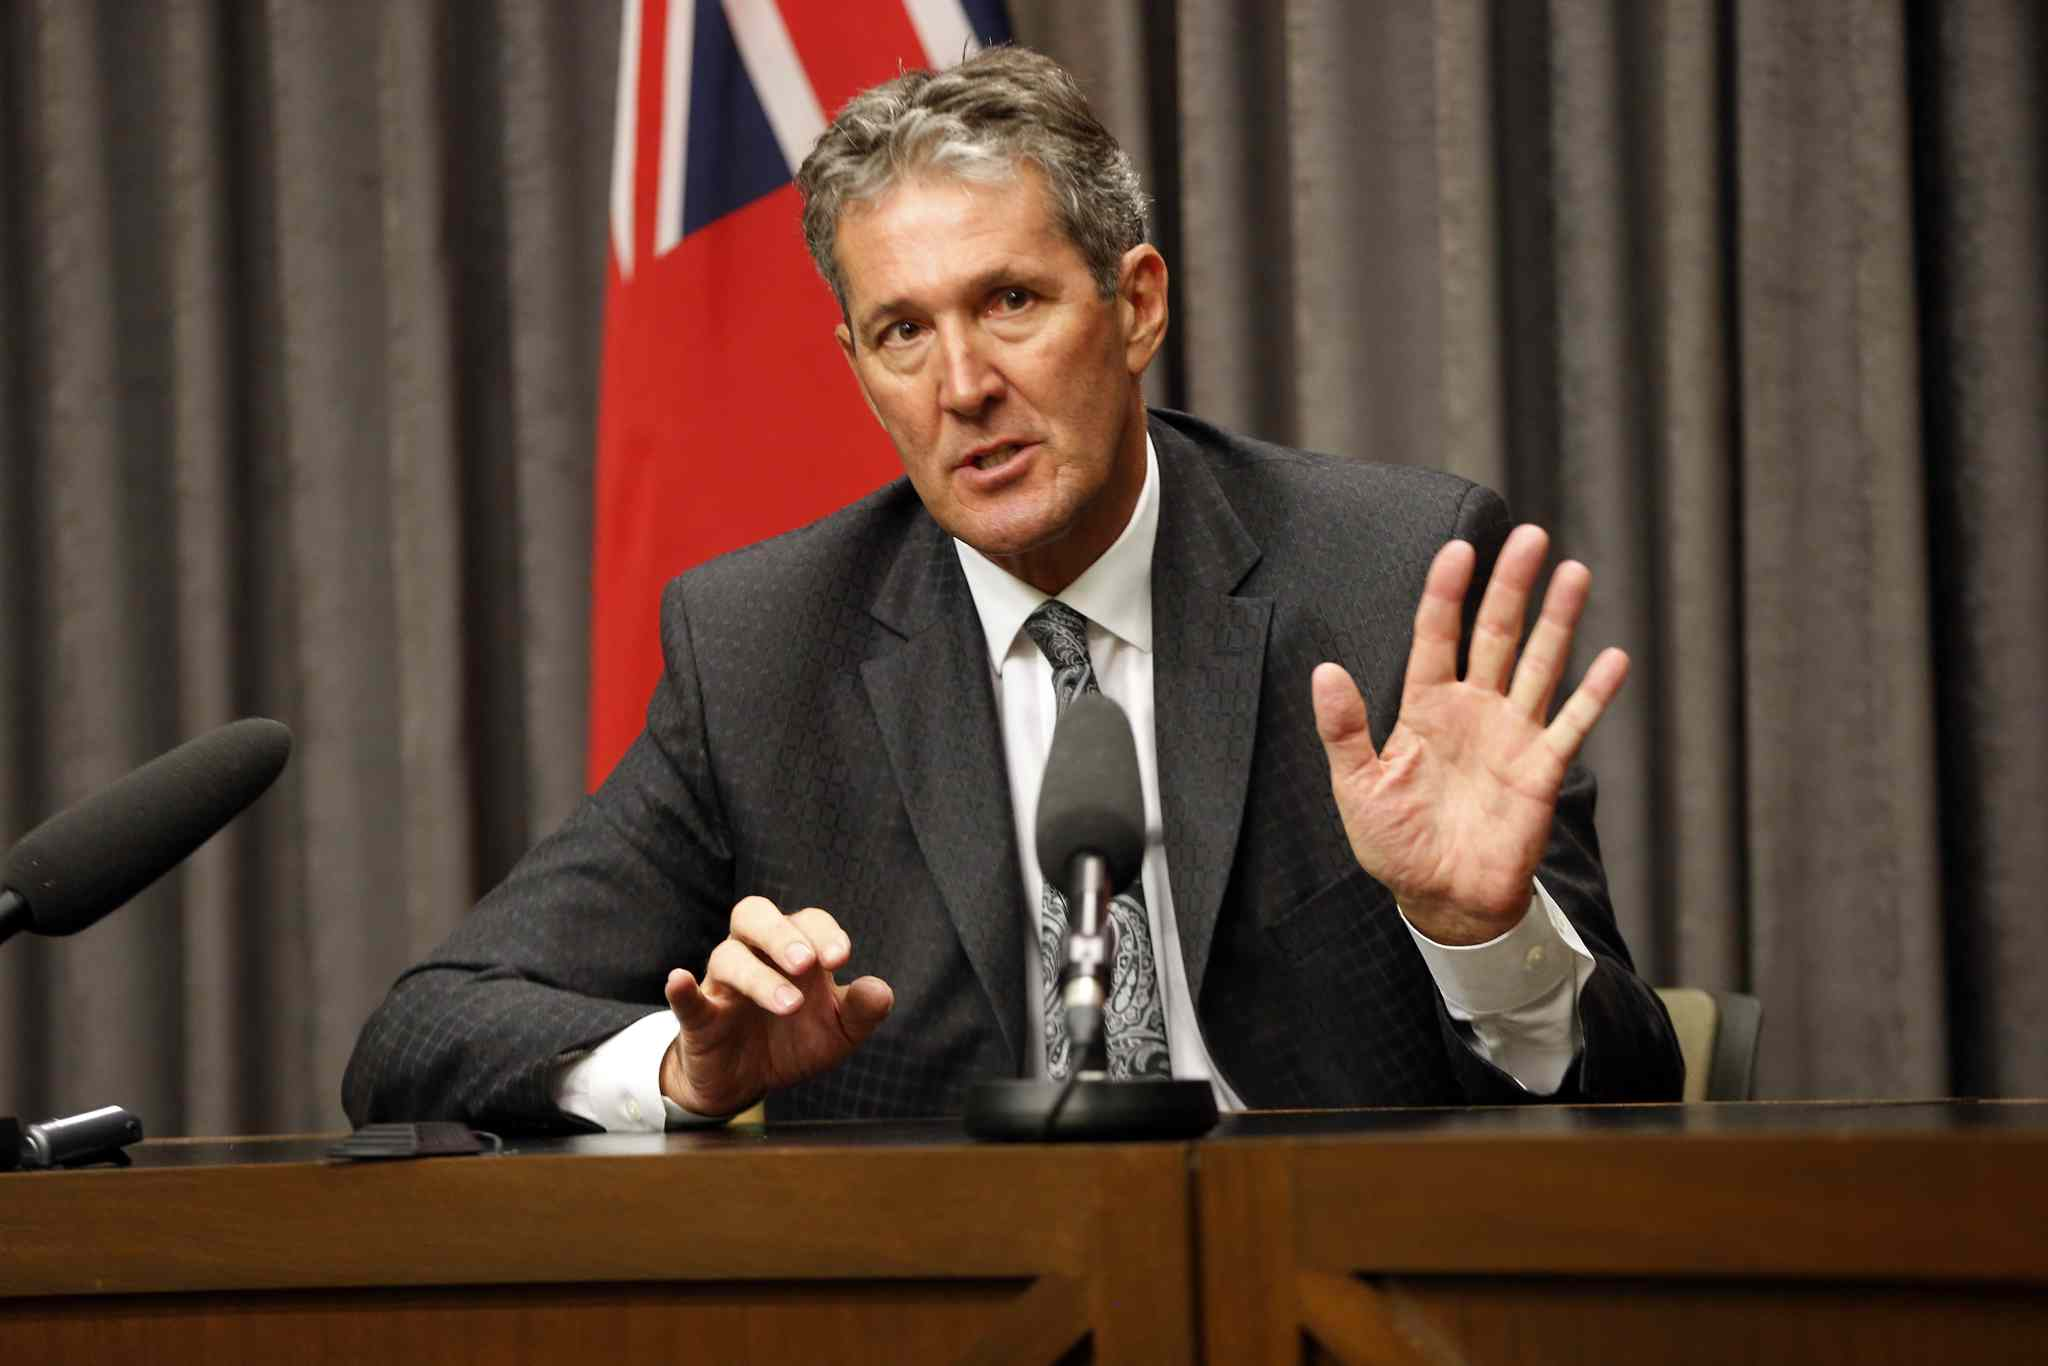 Pallister said that while the government tries to minimize the announcement's impact, there will be less money available for priority items like health and education.